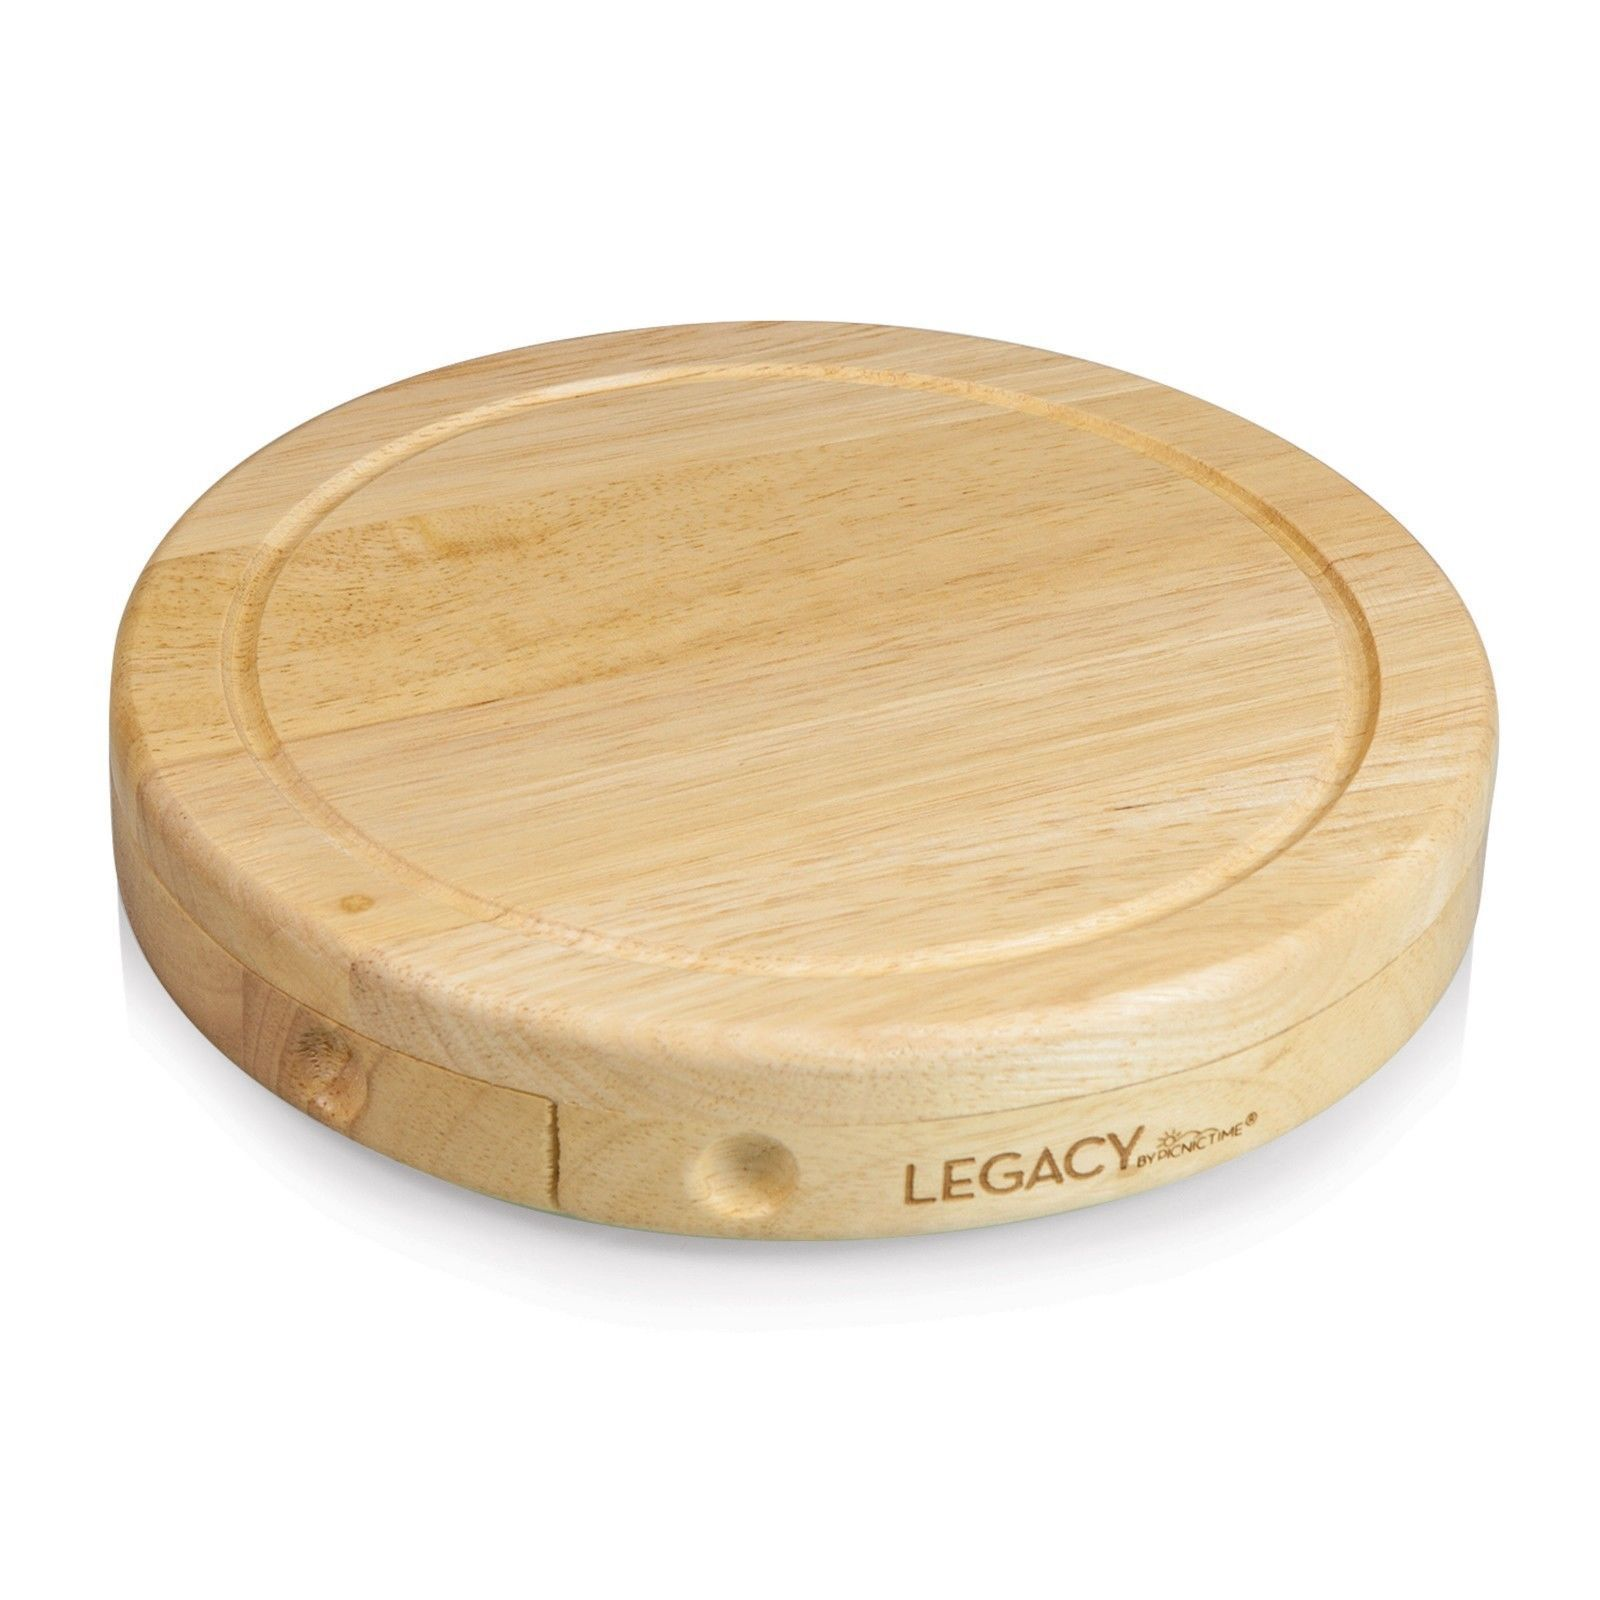 Legacy Brie Cheese Cutting Board Set Swivel Open Rubberwood Serving Tools Kit